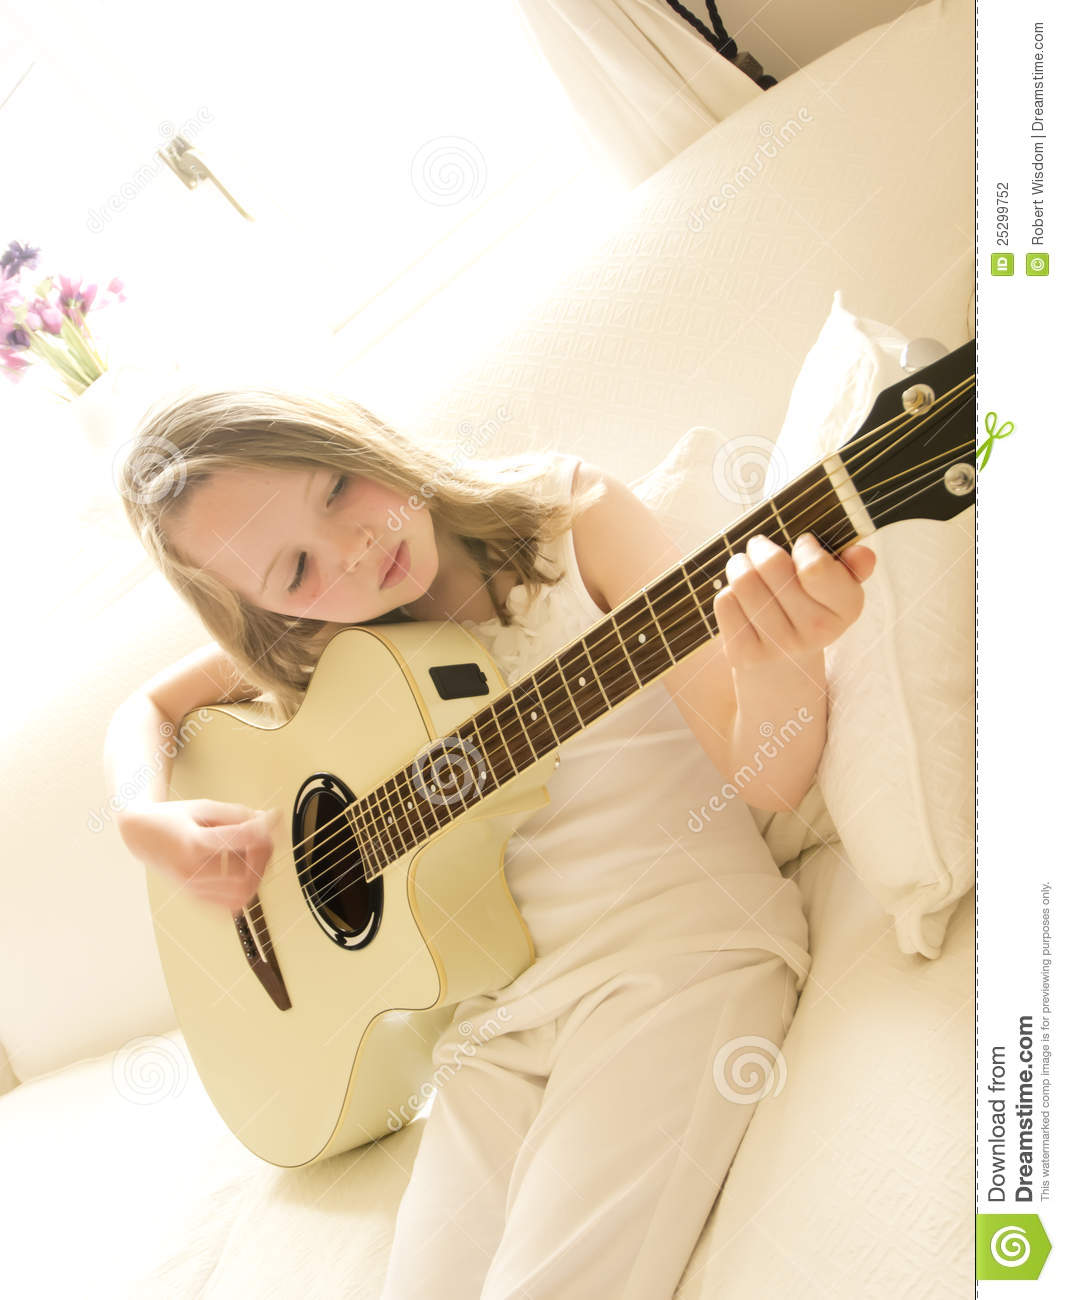 Girl Acoustic Guitars : young girl on a acoustic guitar 3 stock photo image of practice fingers 25299752 ~ Vivirlamusica.com Haus und Dekorationen